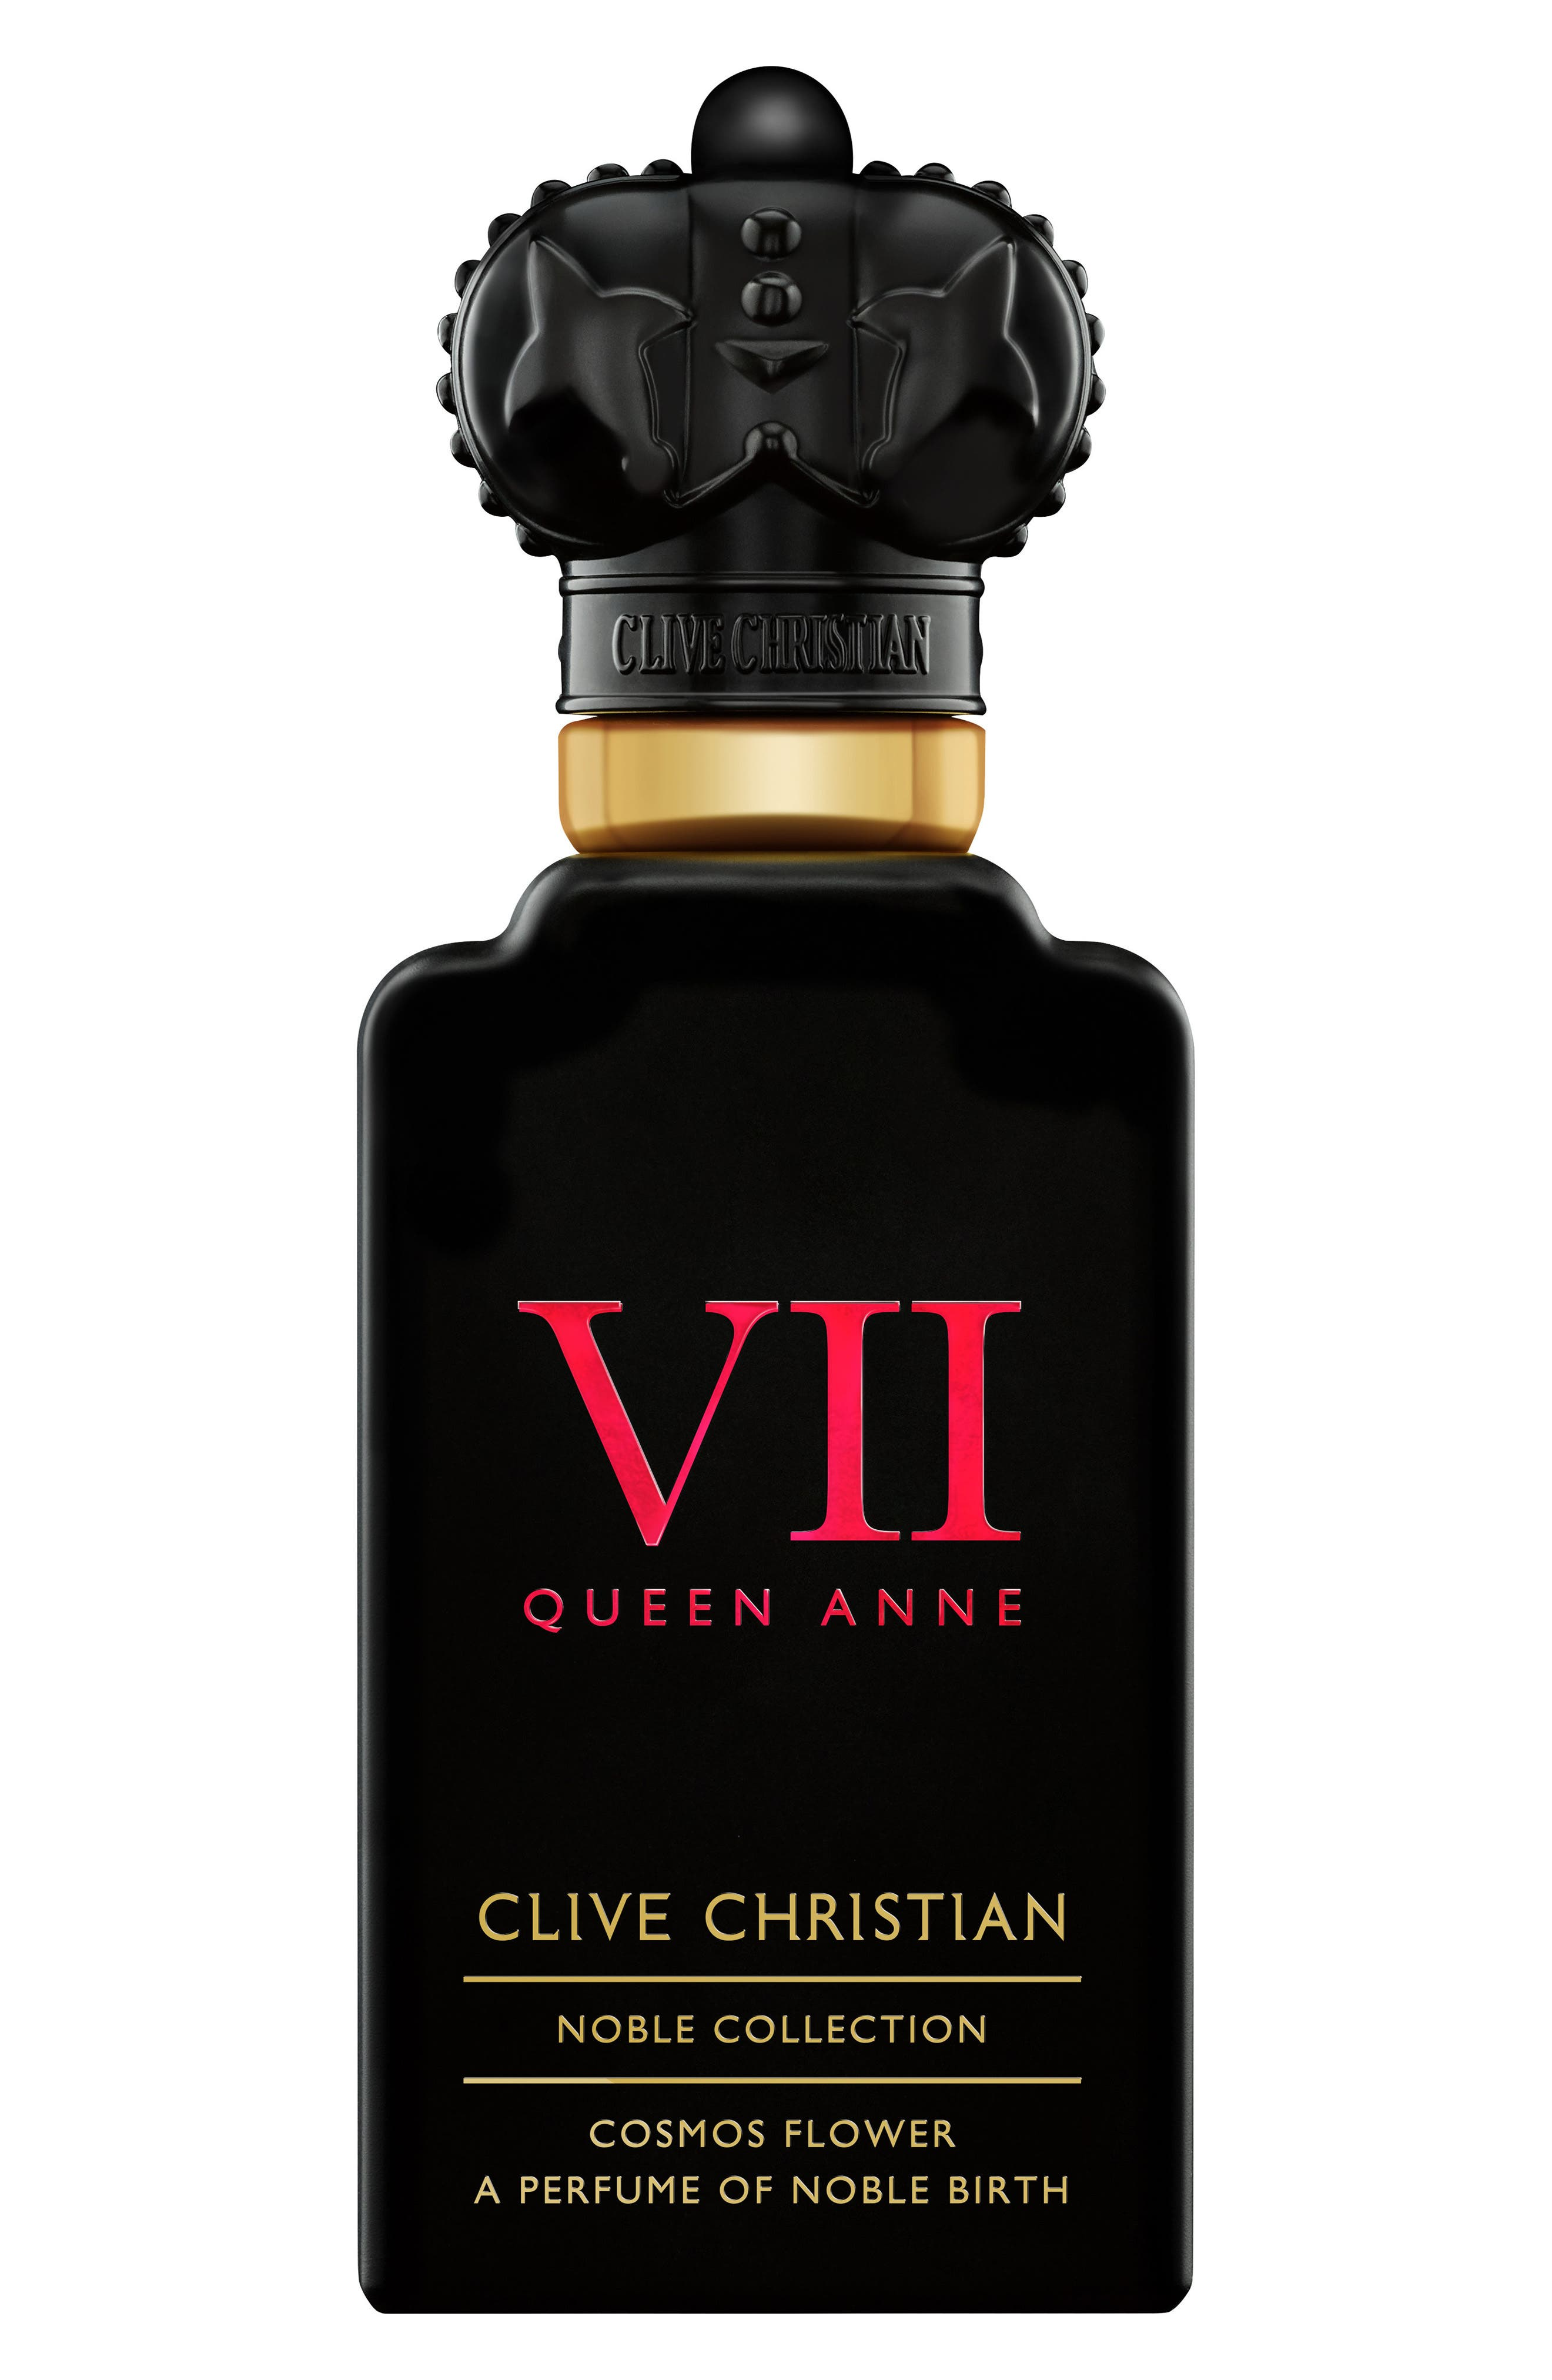 Clive Christian NOVEL VII COSMOS FLOWER PERFUME